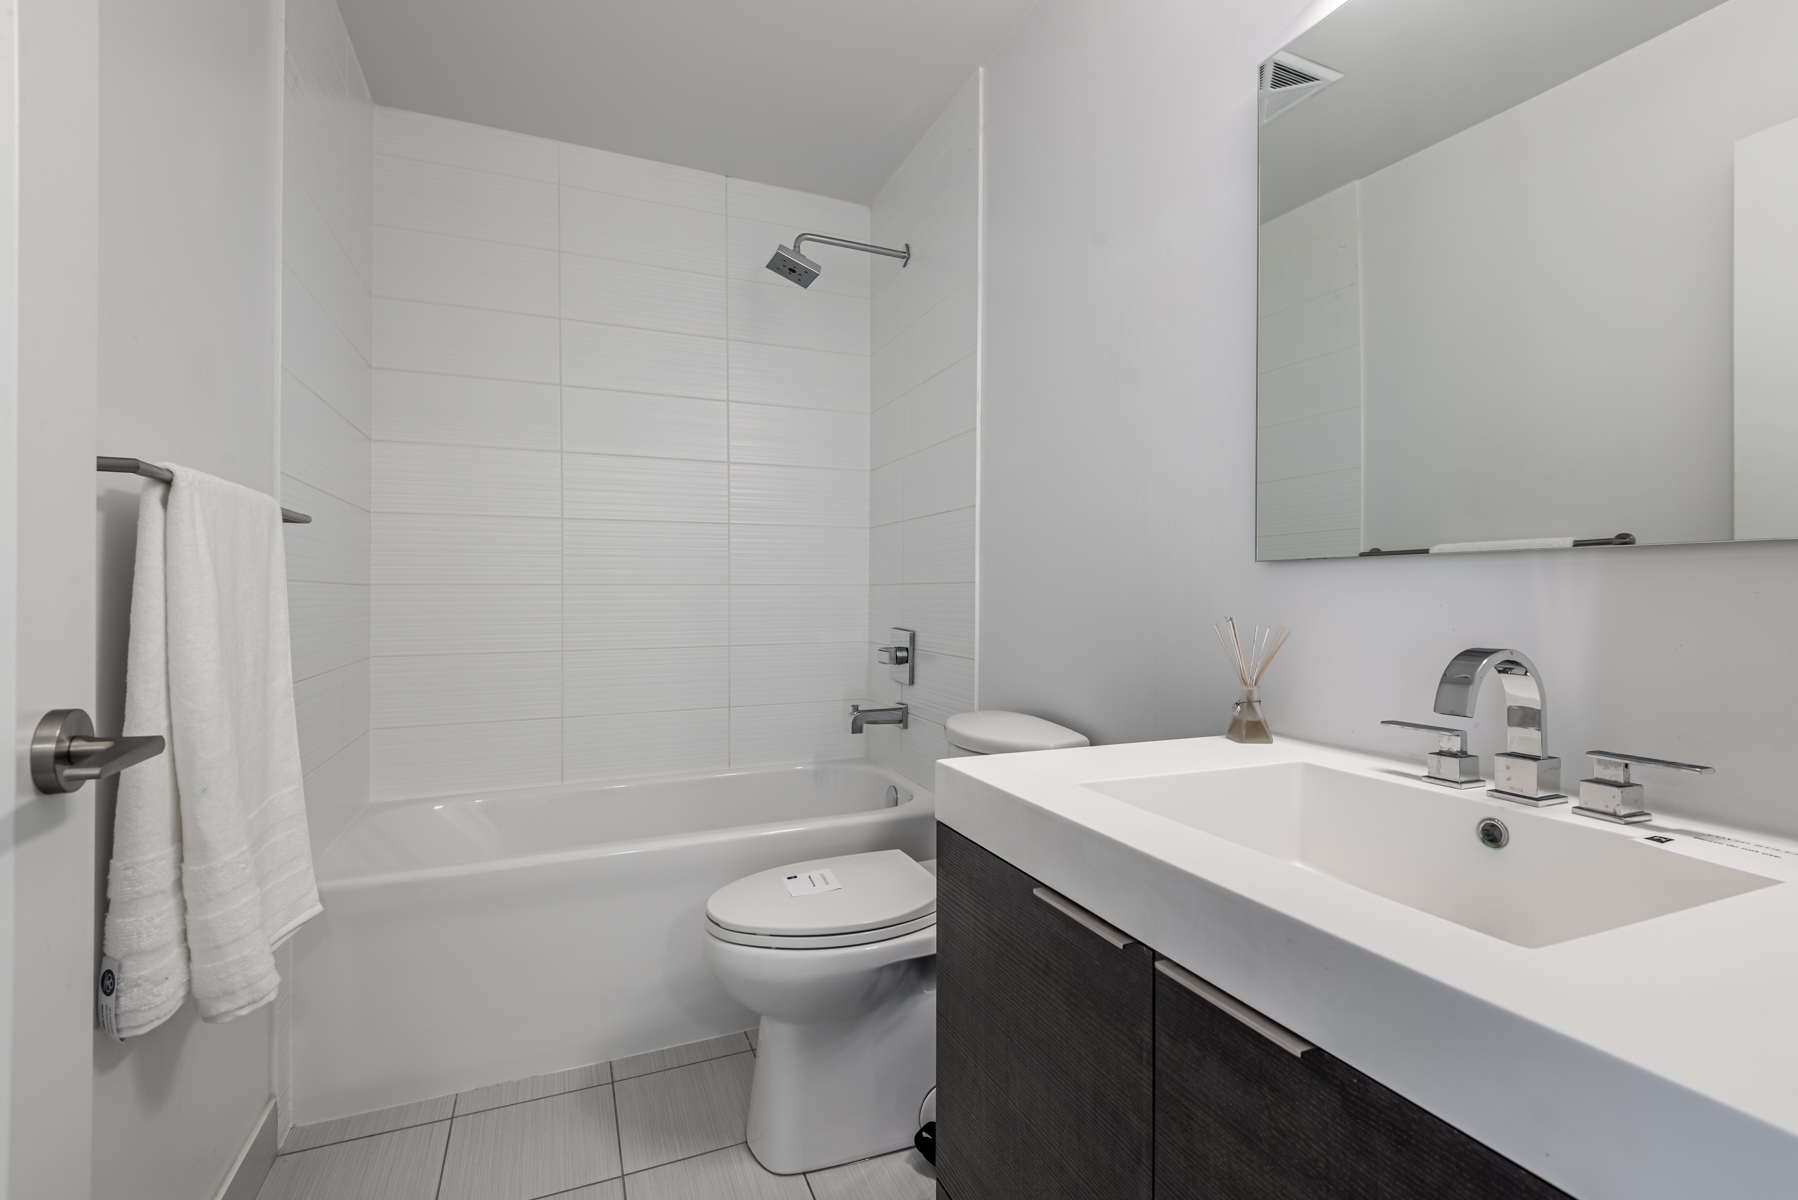 Bathroom with gray walls, white quartz counter and large vanity.